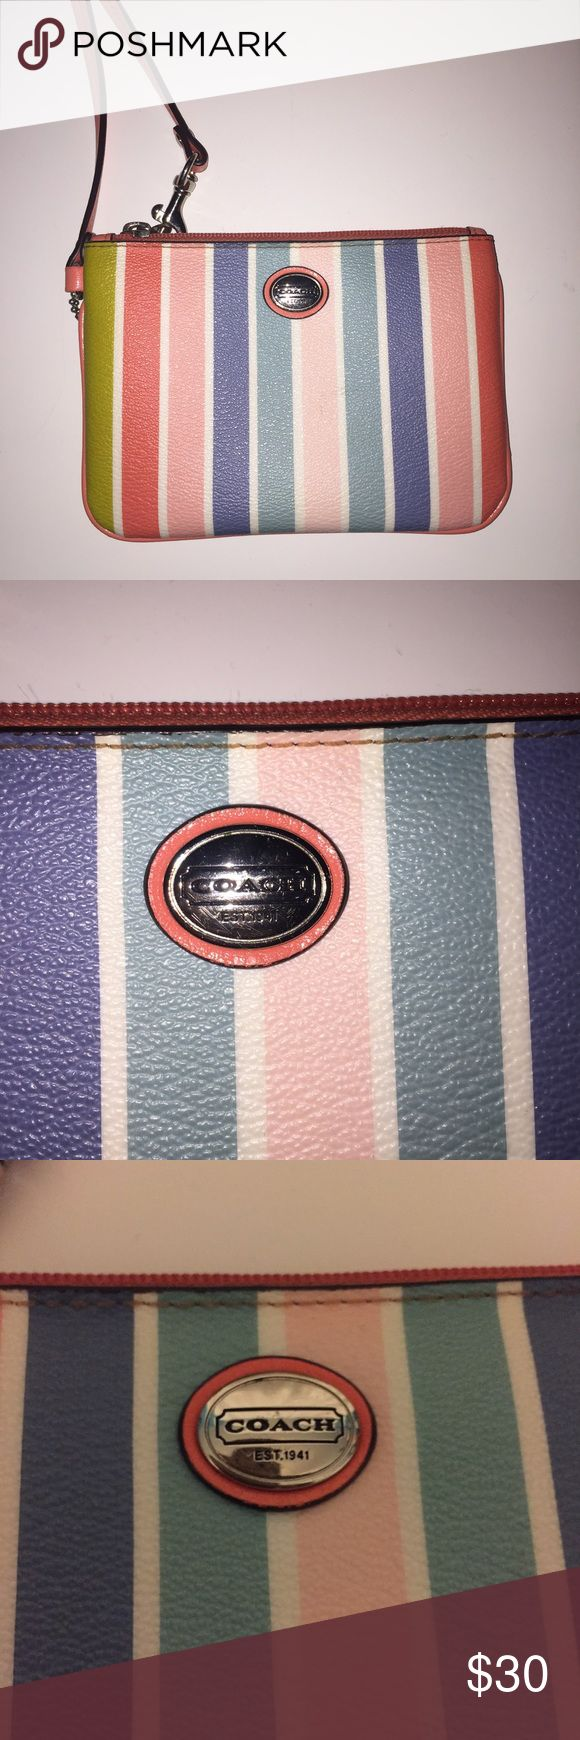 Coach wristlet Pastel colors. In very good condition. Has a pocket for cards. Coach Bags Clutches & Wristlets